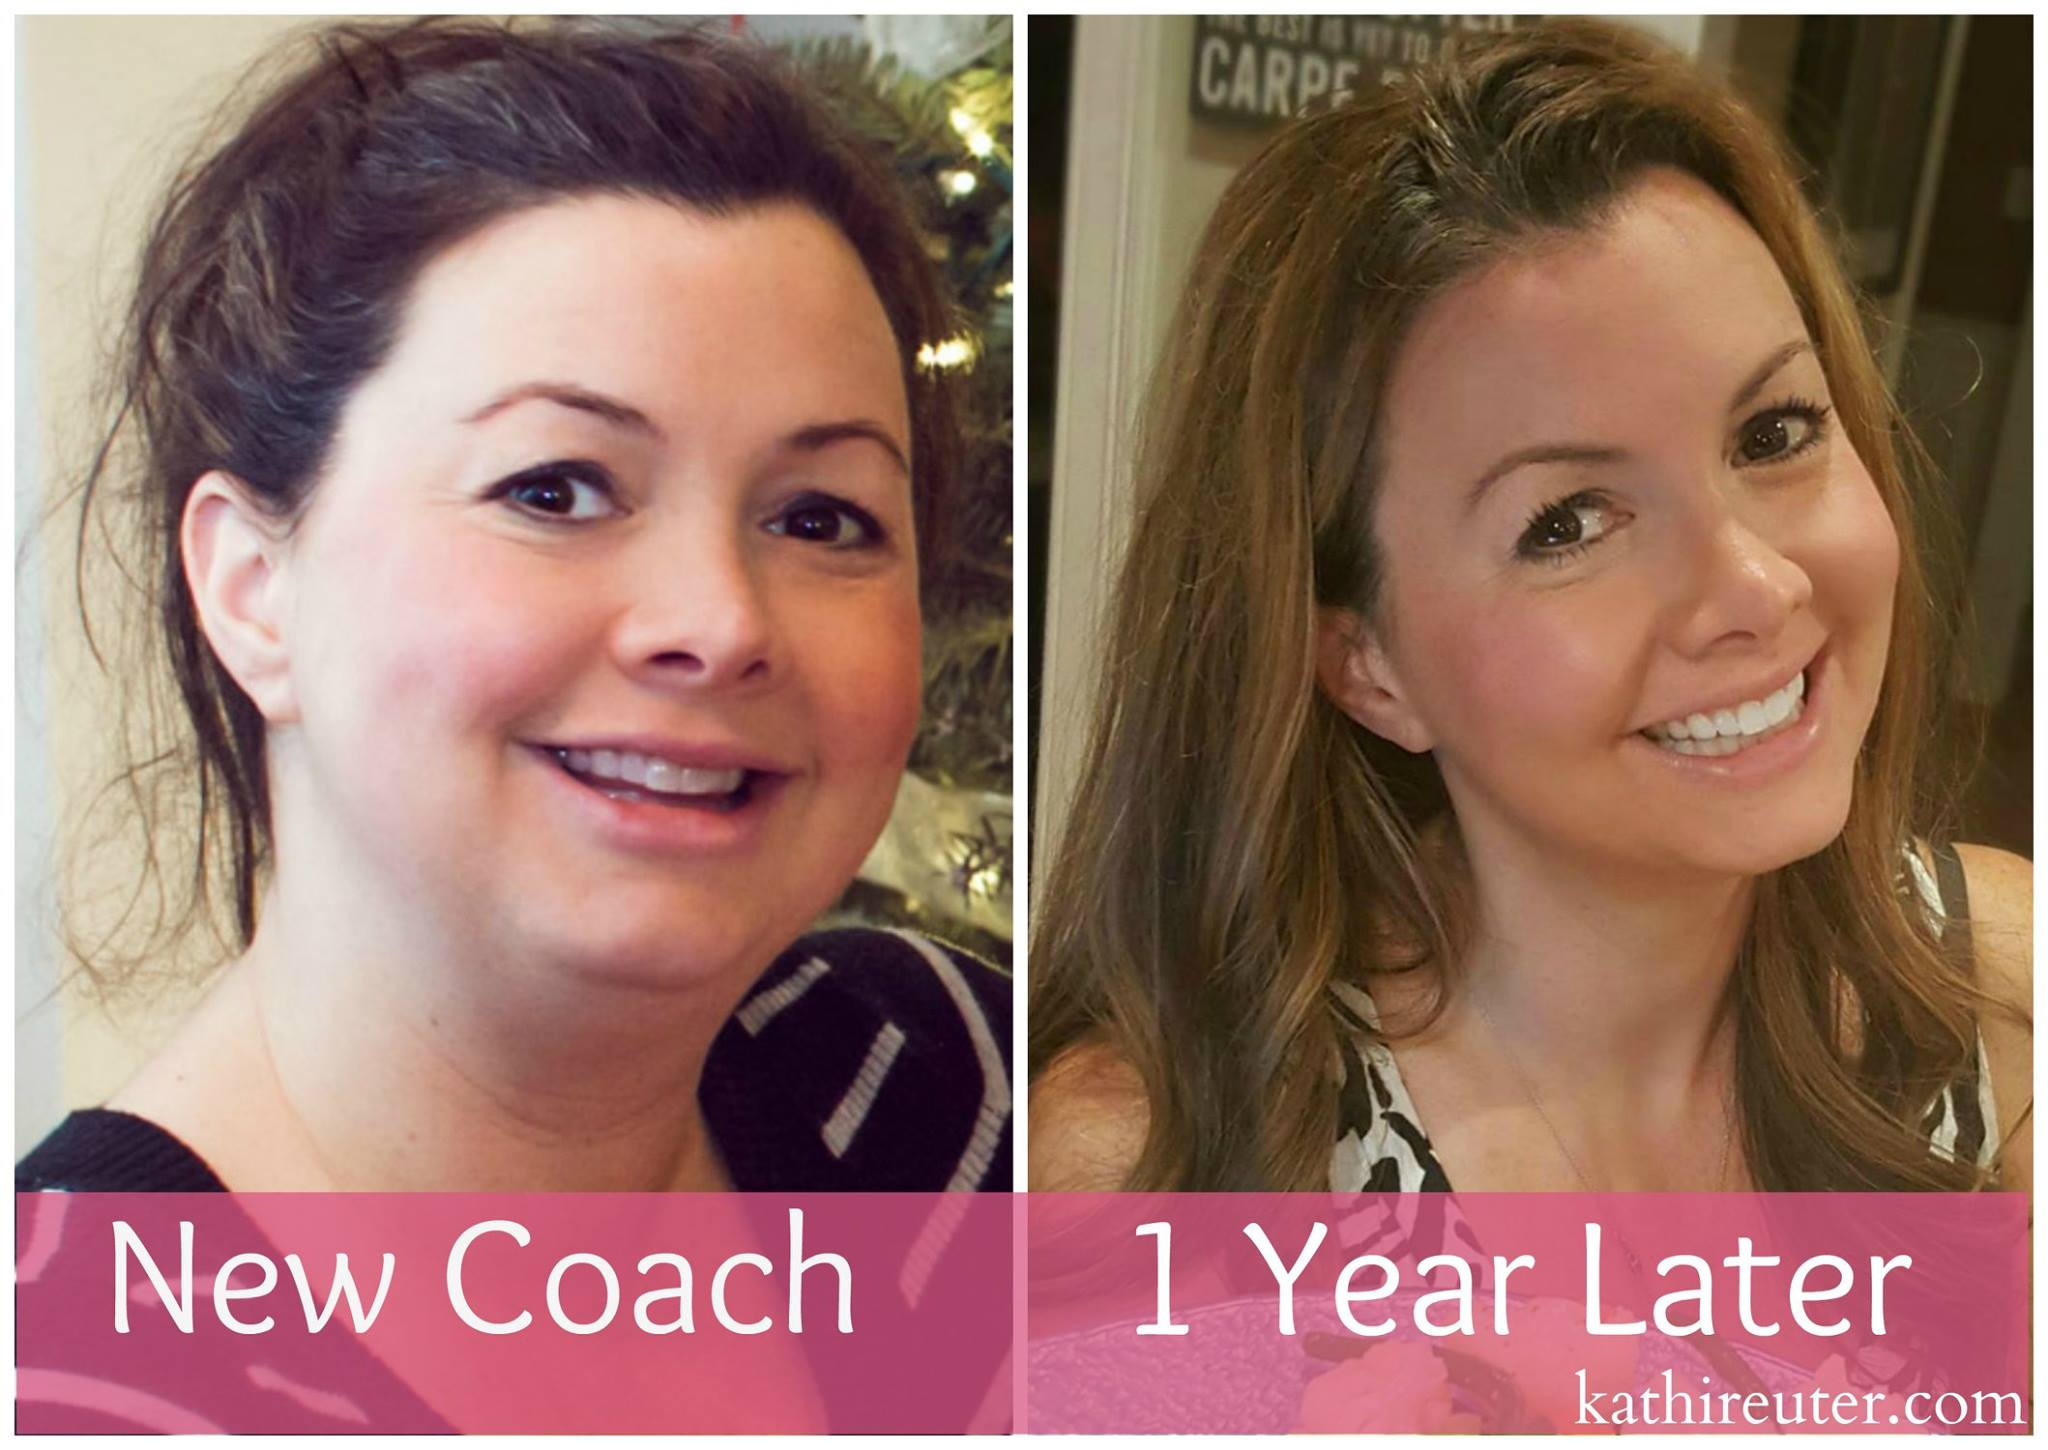 Do I Need To Be In Great Shape To Be A Health And Fitness Coach With Team Beachbody?